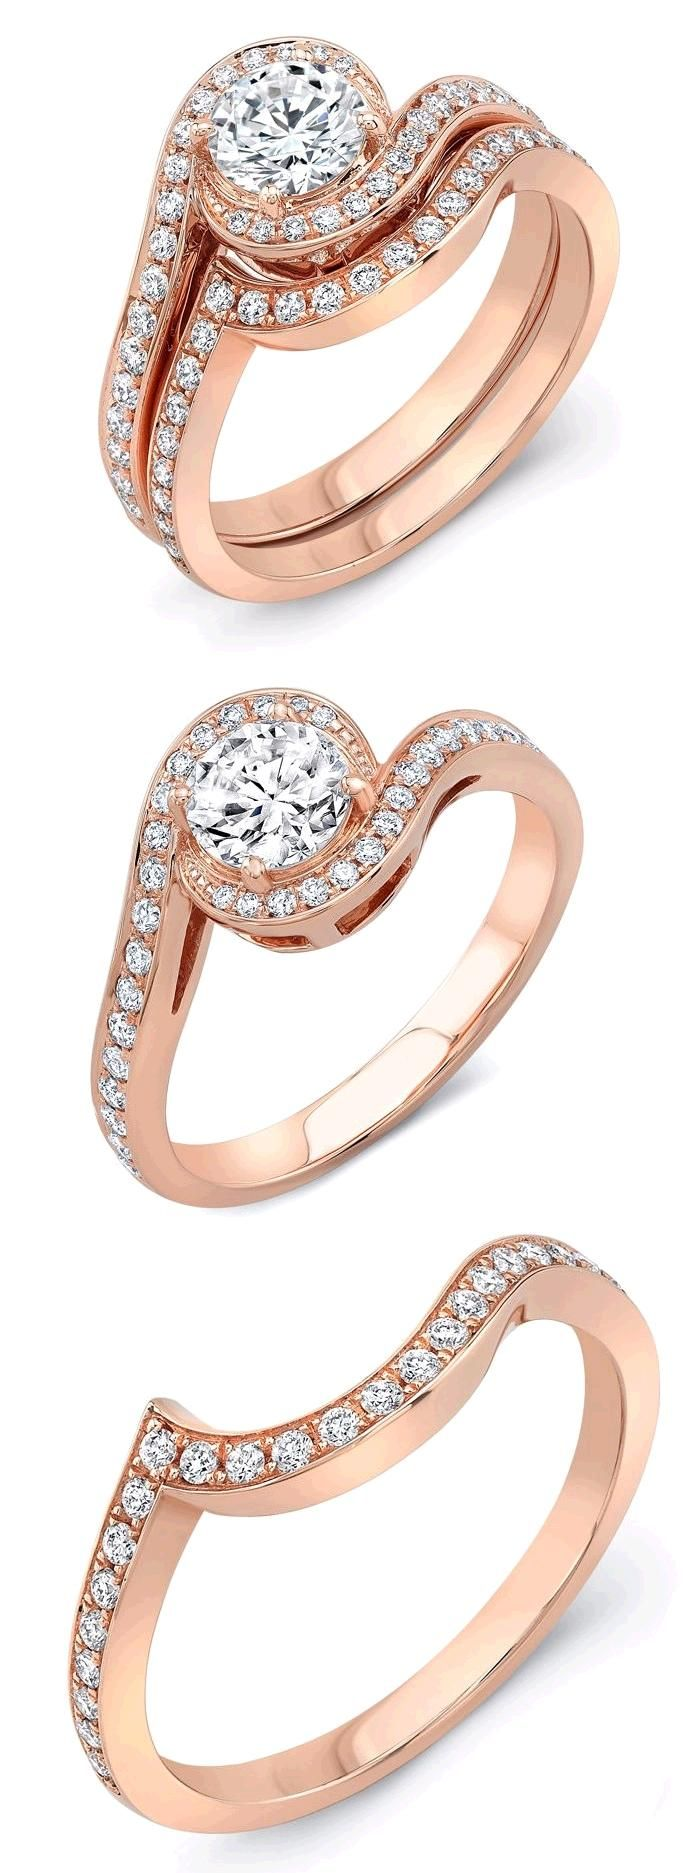 Kt rose gold diamond rings bisutería pinterest rose gold